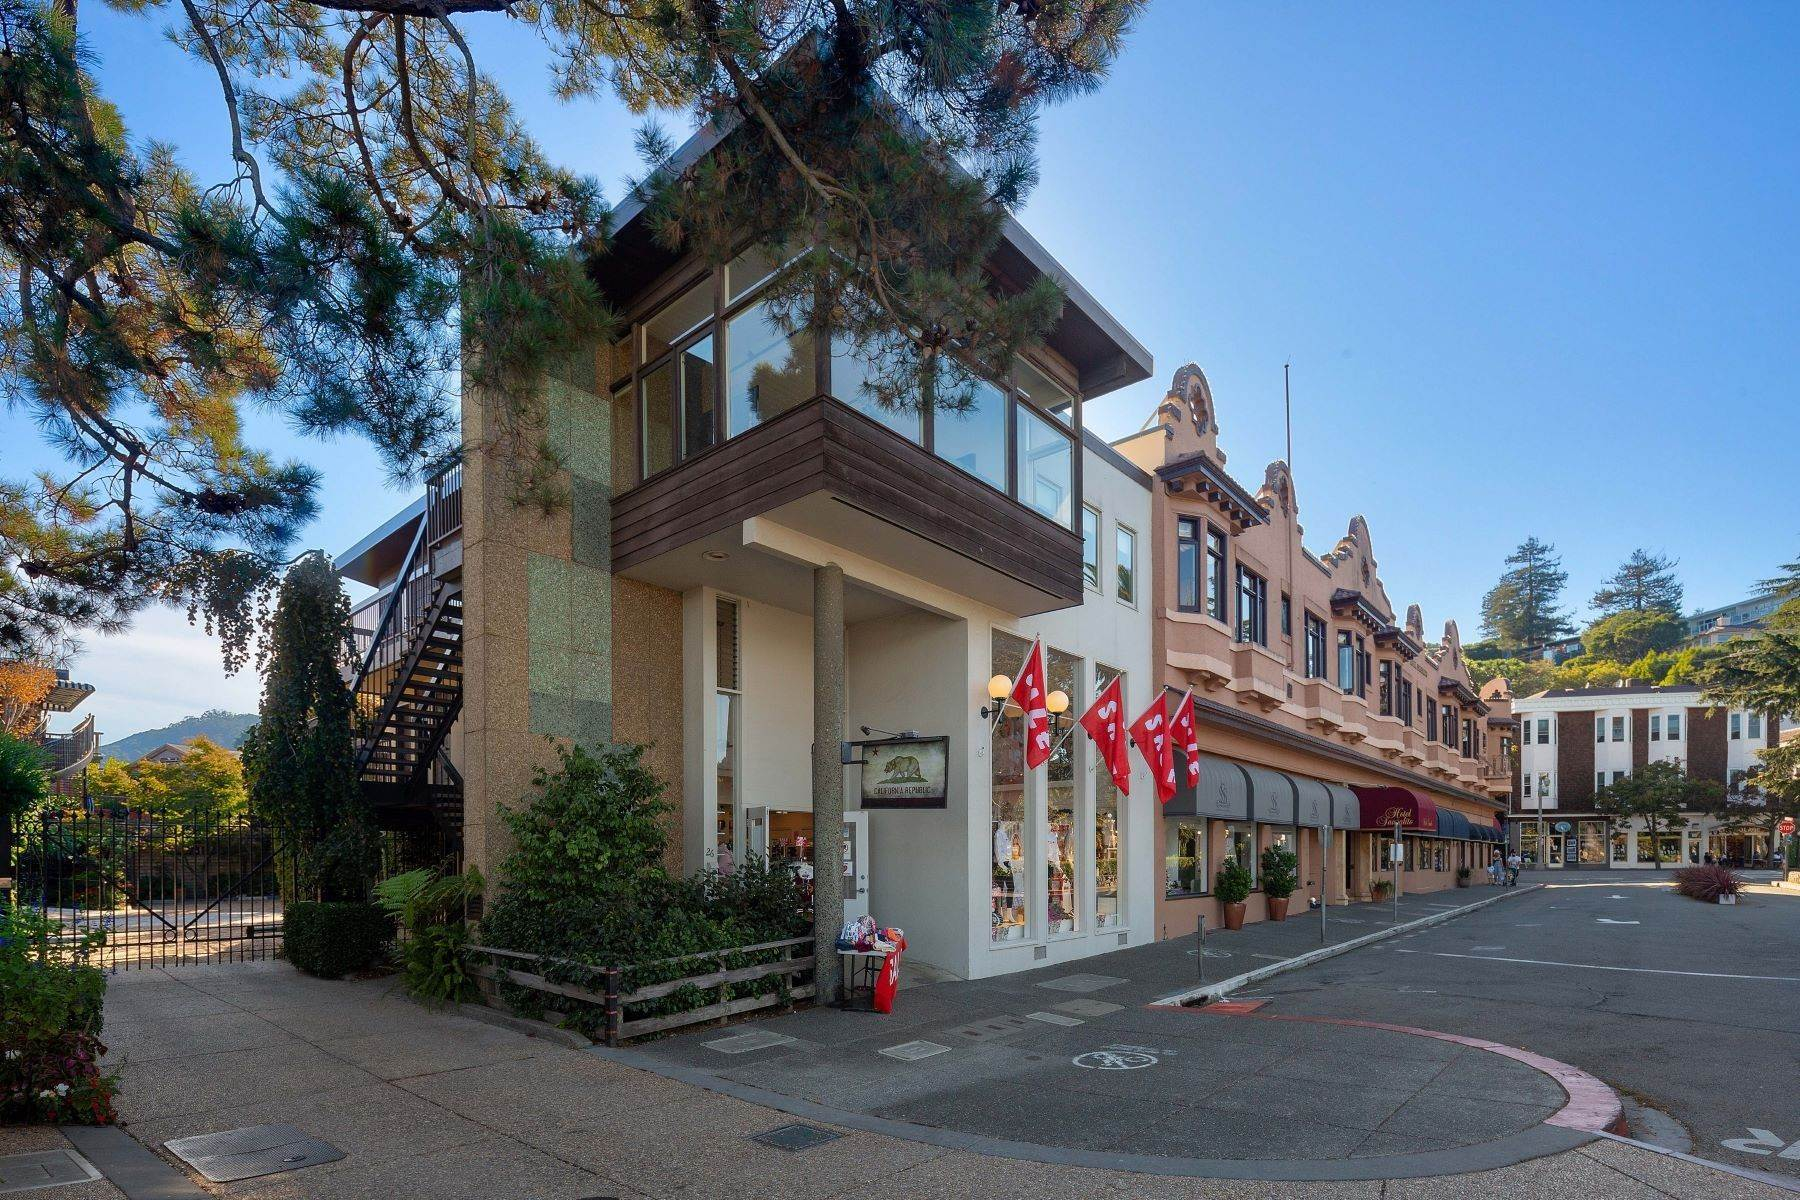 Property for Sale at Exceptional Residental / Commercial Investment Opportunity in Prime Location 26 El Portal Sausalito, California 94965 United States